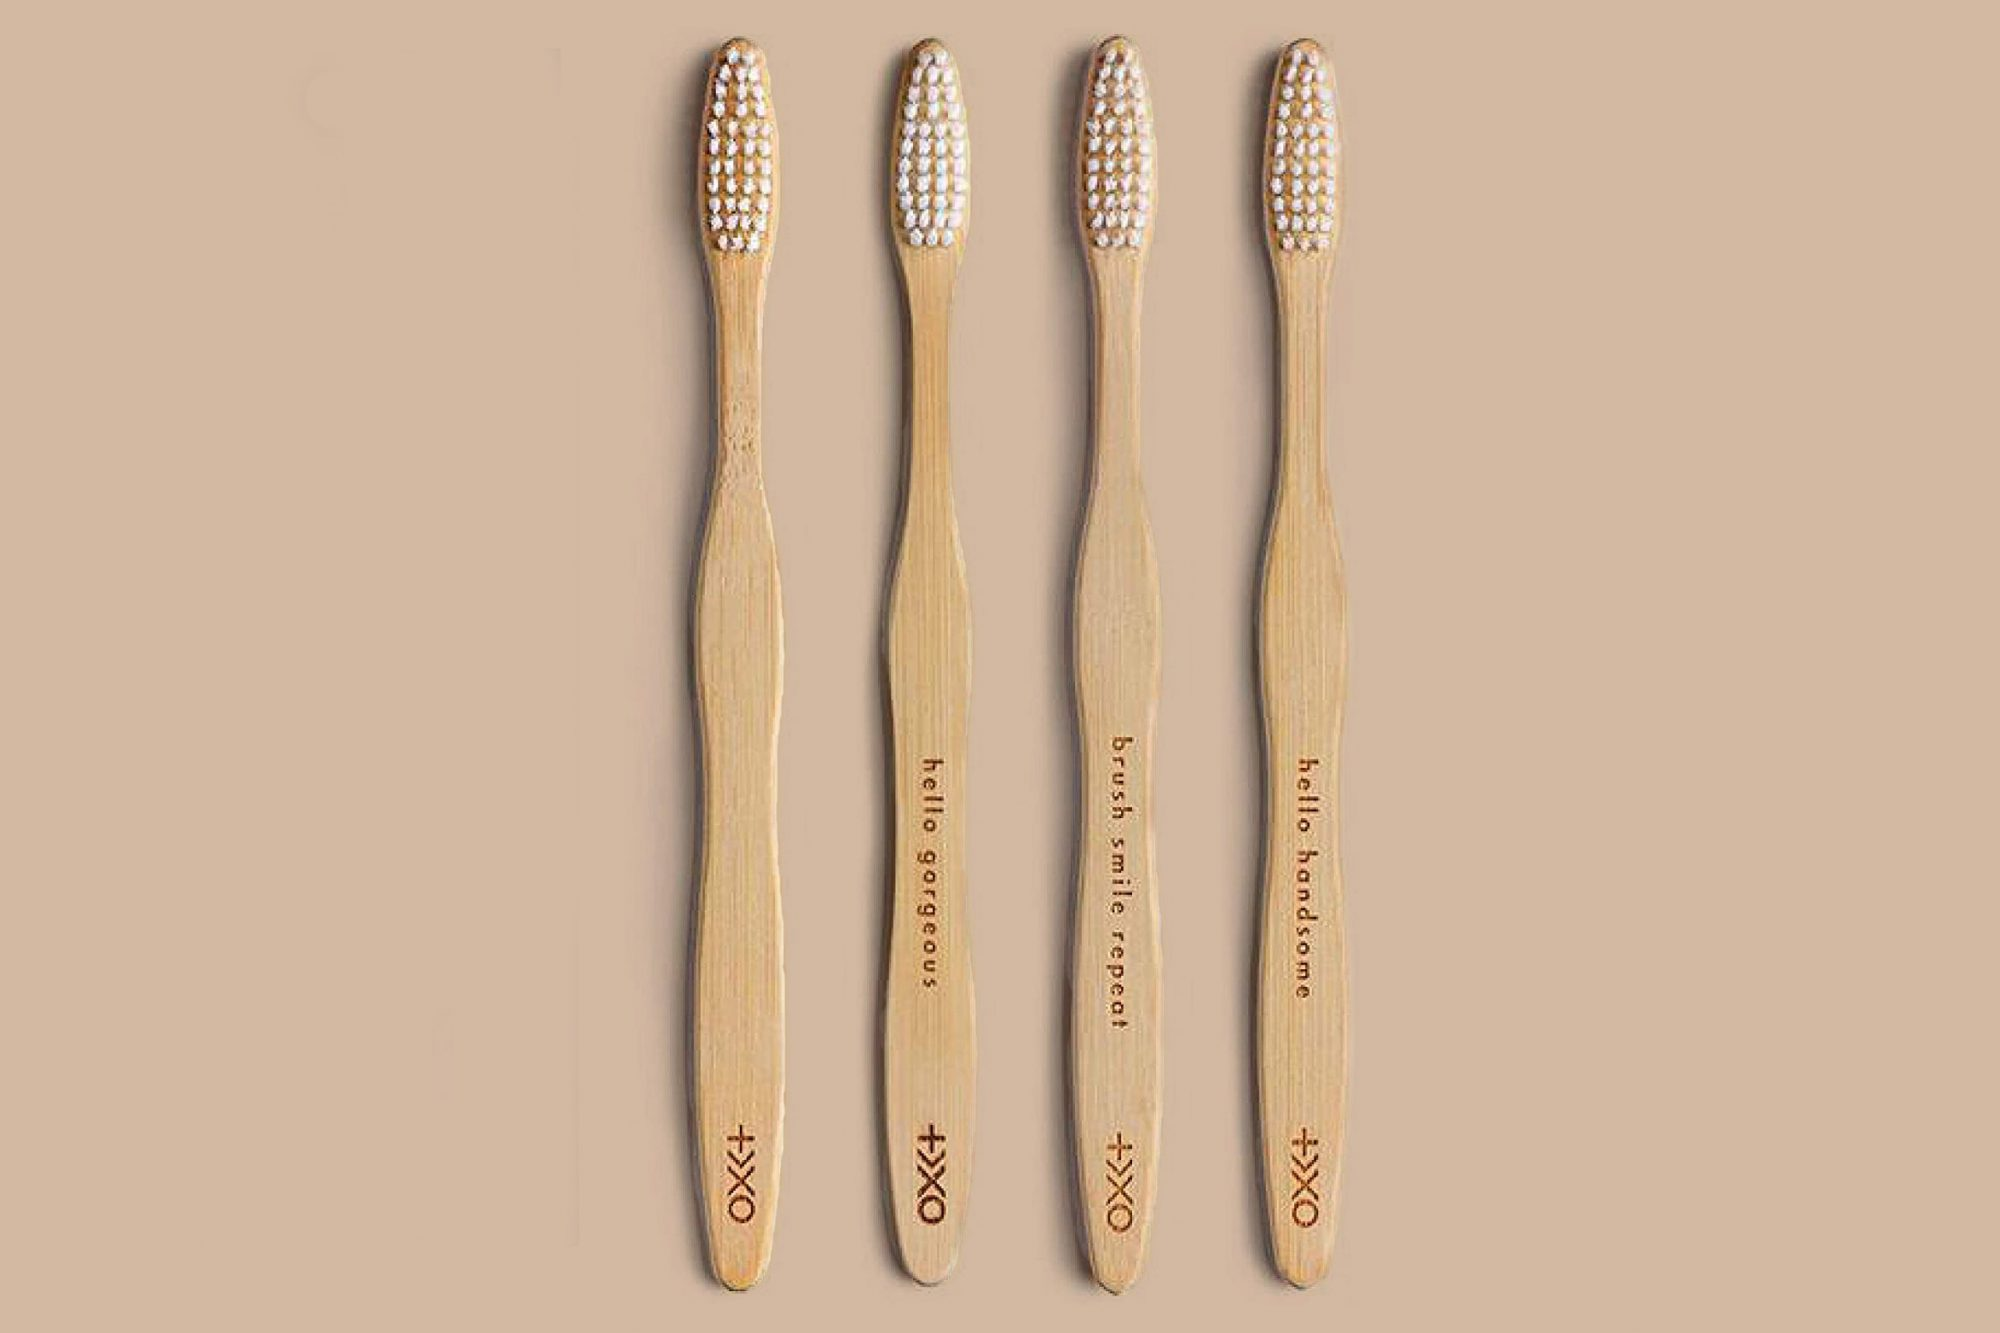 four plus ultra bambo toothbrushes